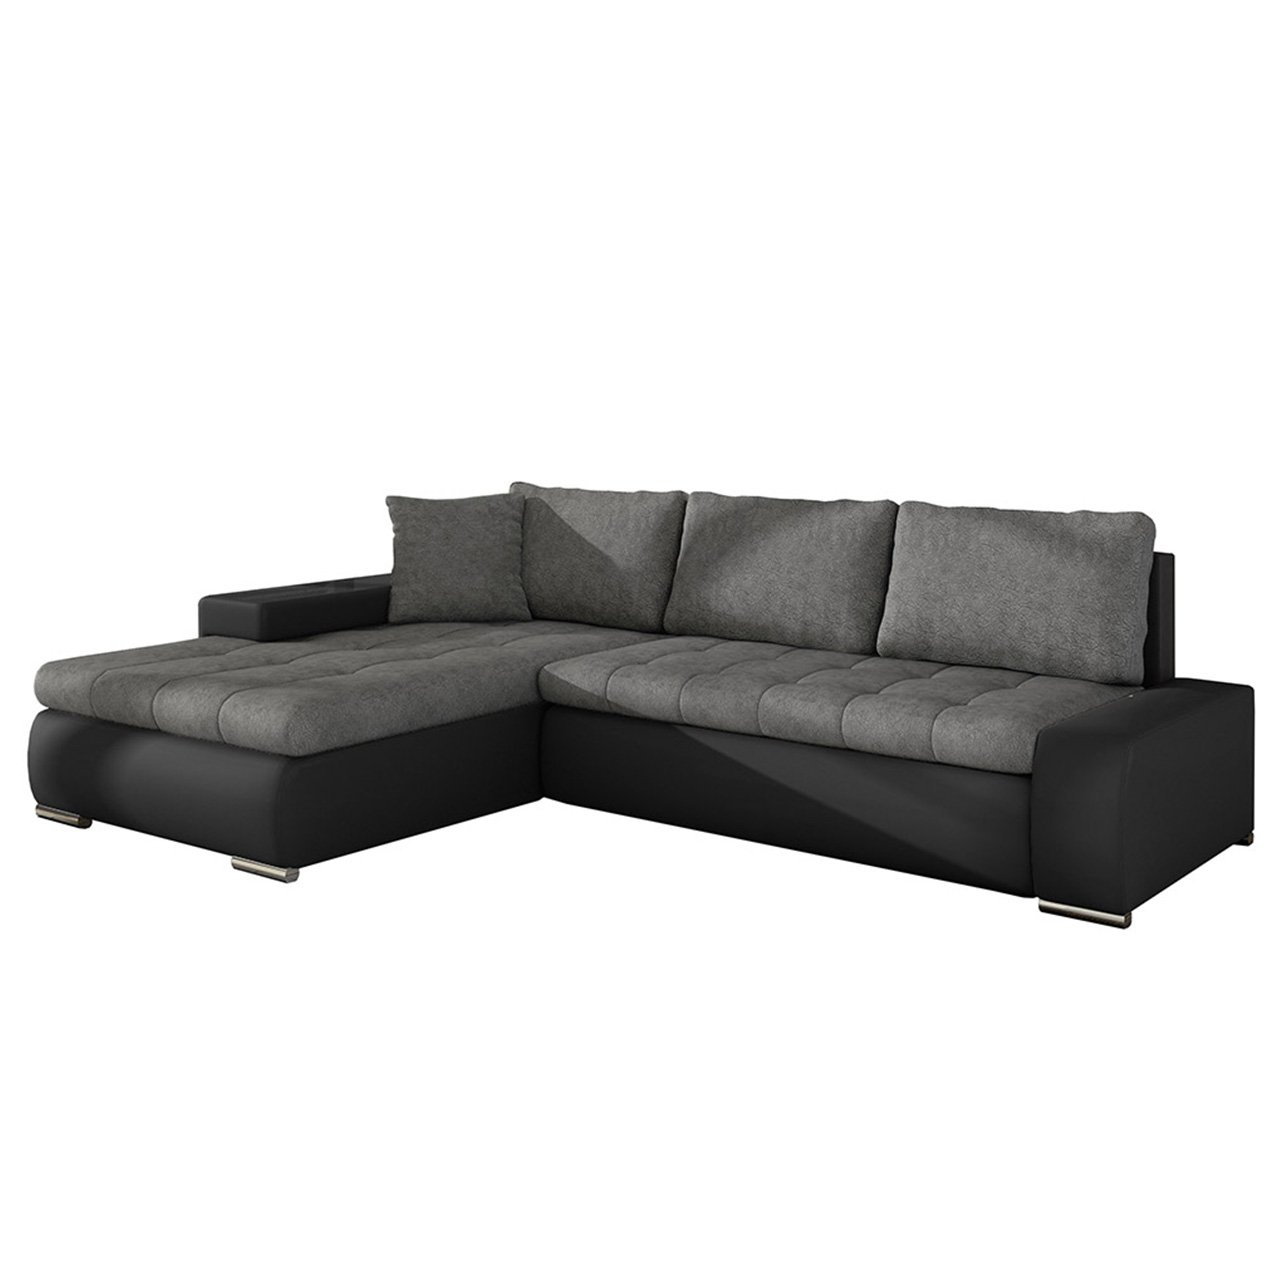 elegante sofa orkan mini loft mit schlaffunktion und bettfunktion eckcouch ecksofa mit. Black Bedroom Furniture Sets. Home Design Ideas